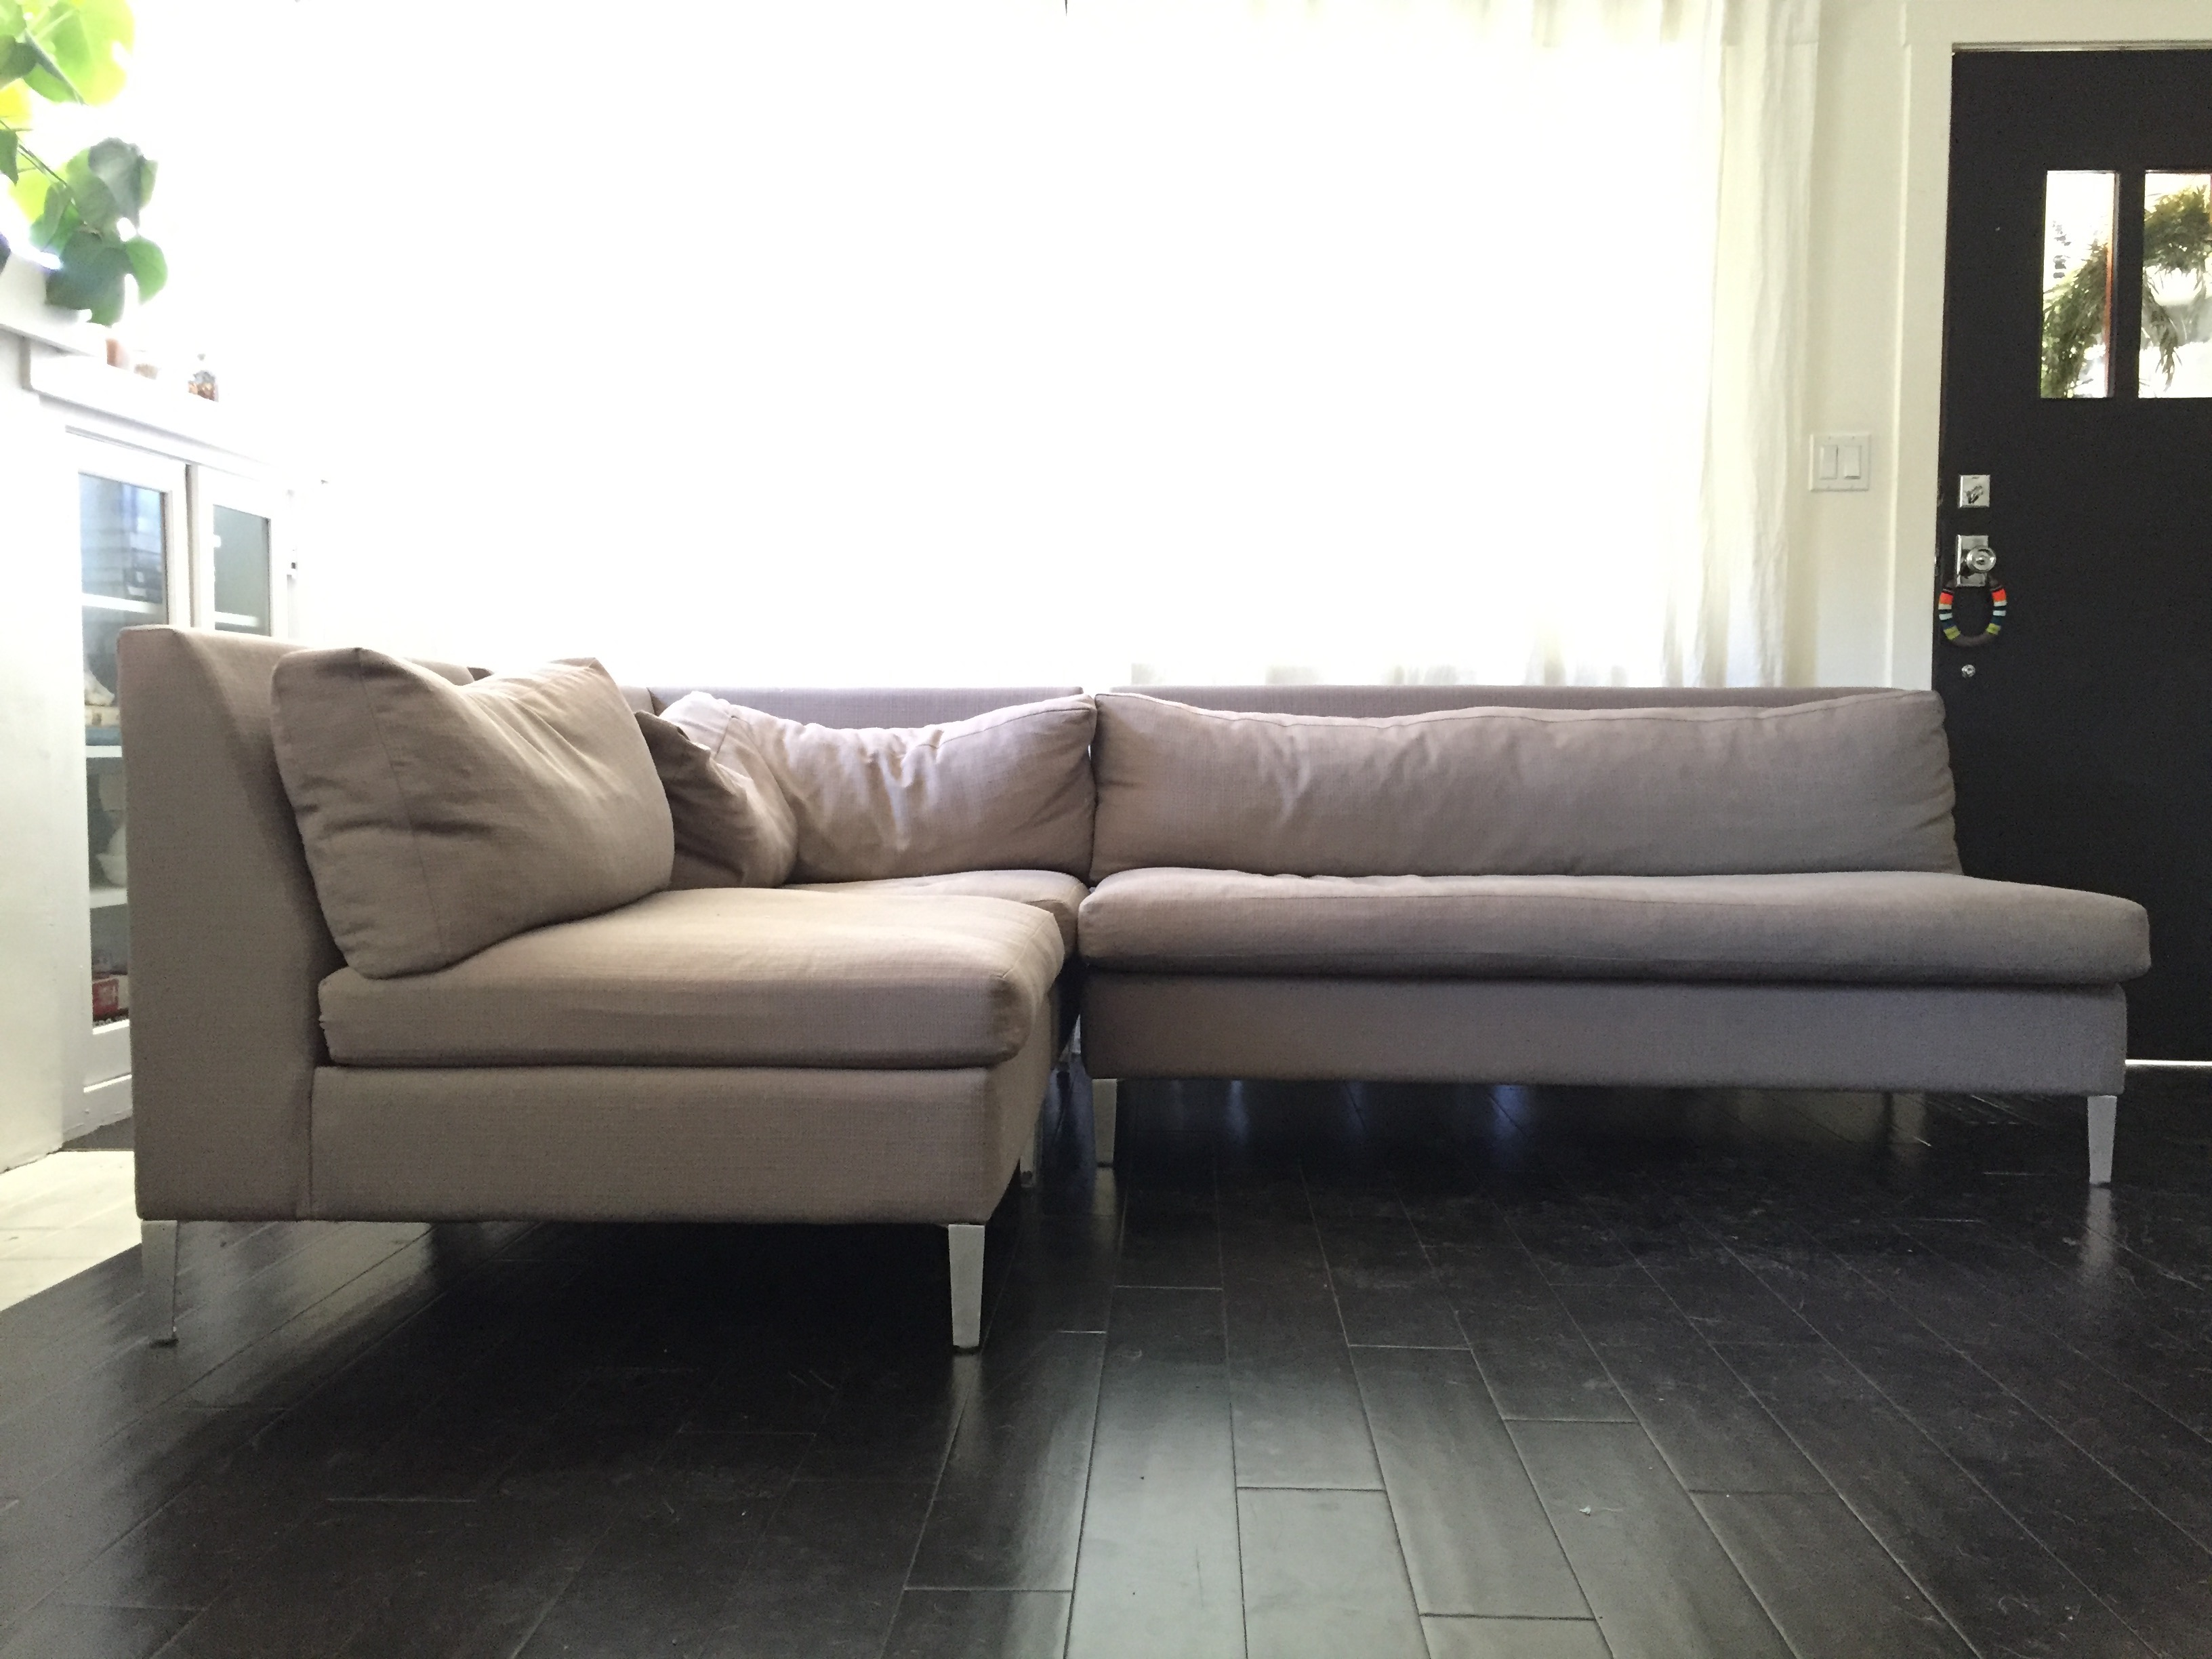 3-Piece Cielo Sectional from CB2 - Image 3 of 9  sc 1 st  Chairish : cb2 cielo sectional - Sectionals, Sofas & Couches